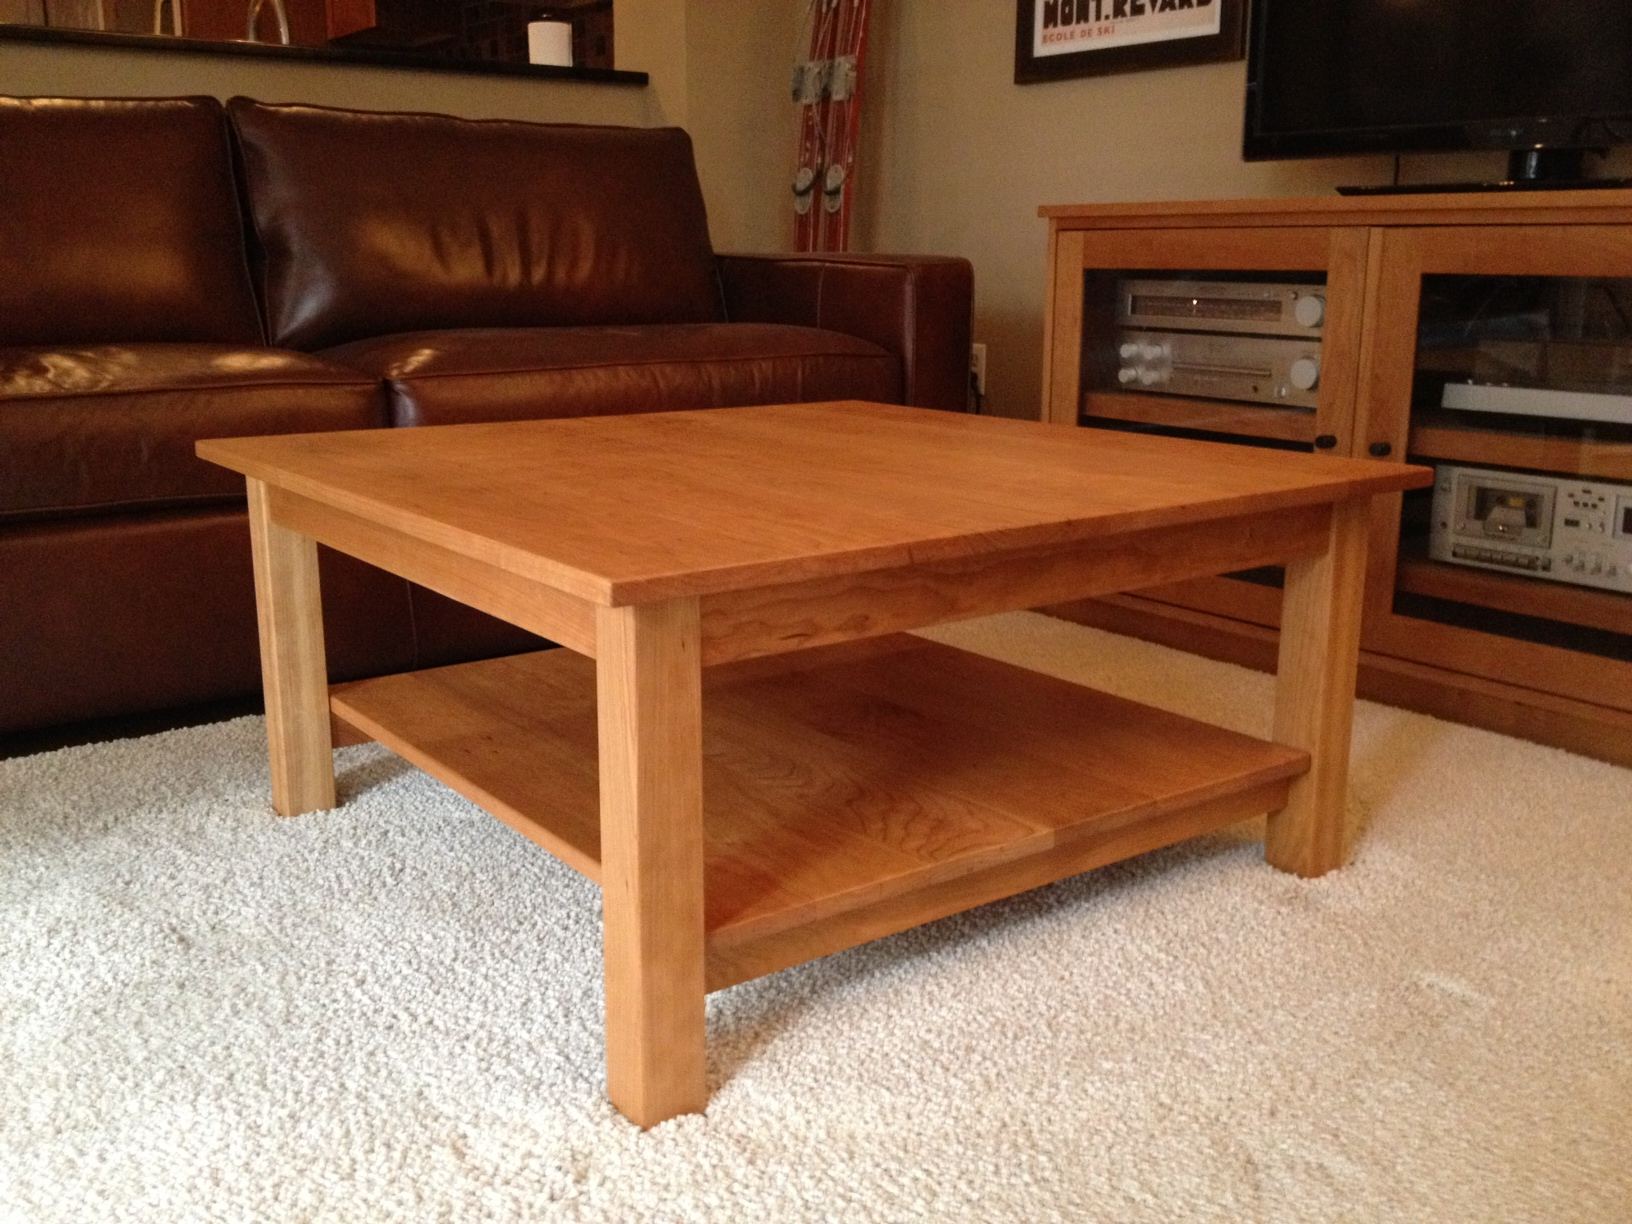 Solid Cherry Coffee Table Hipenmoedernl throughout size 1632 X 1224